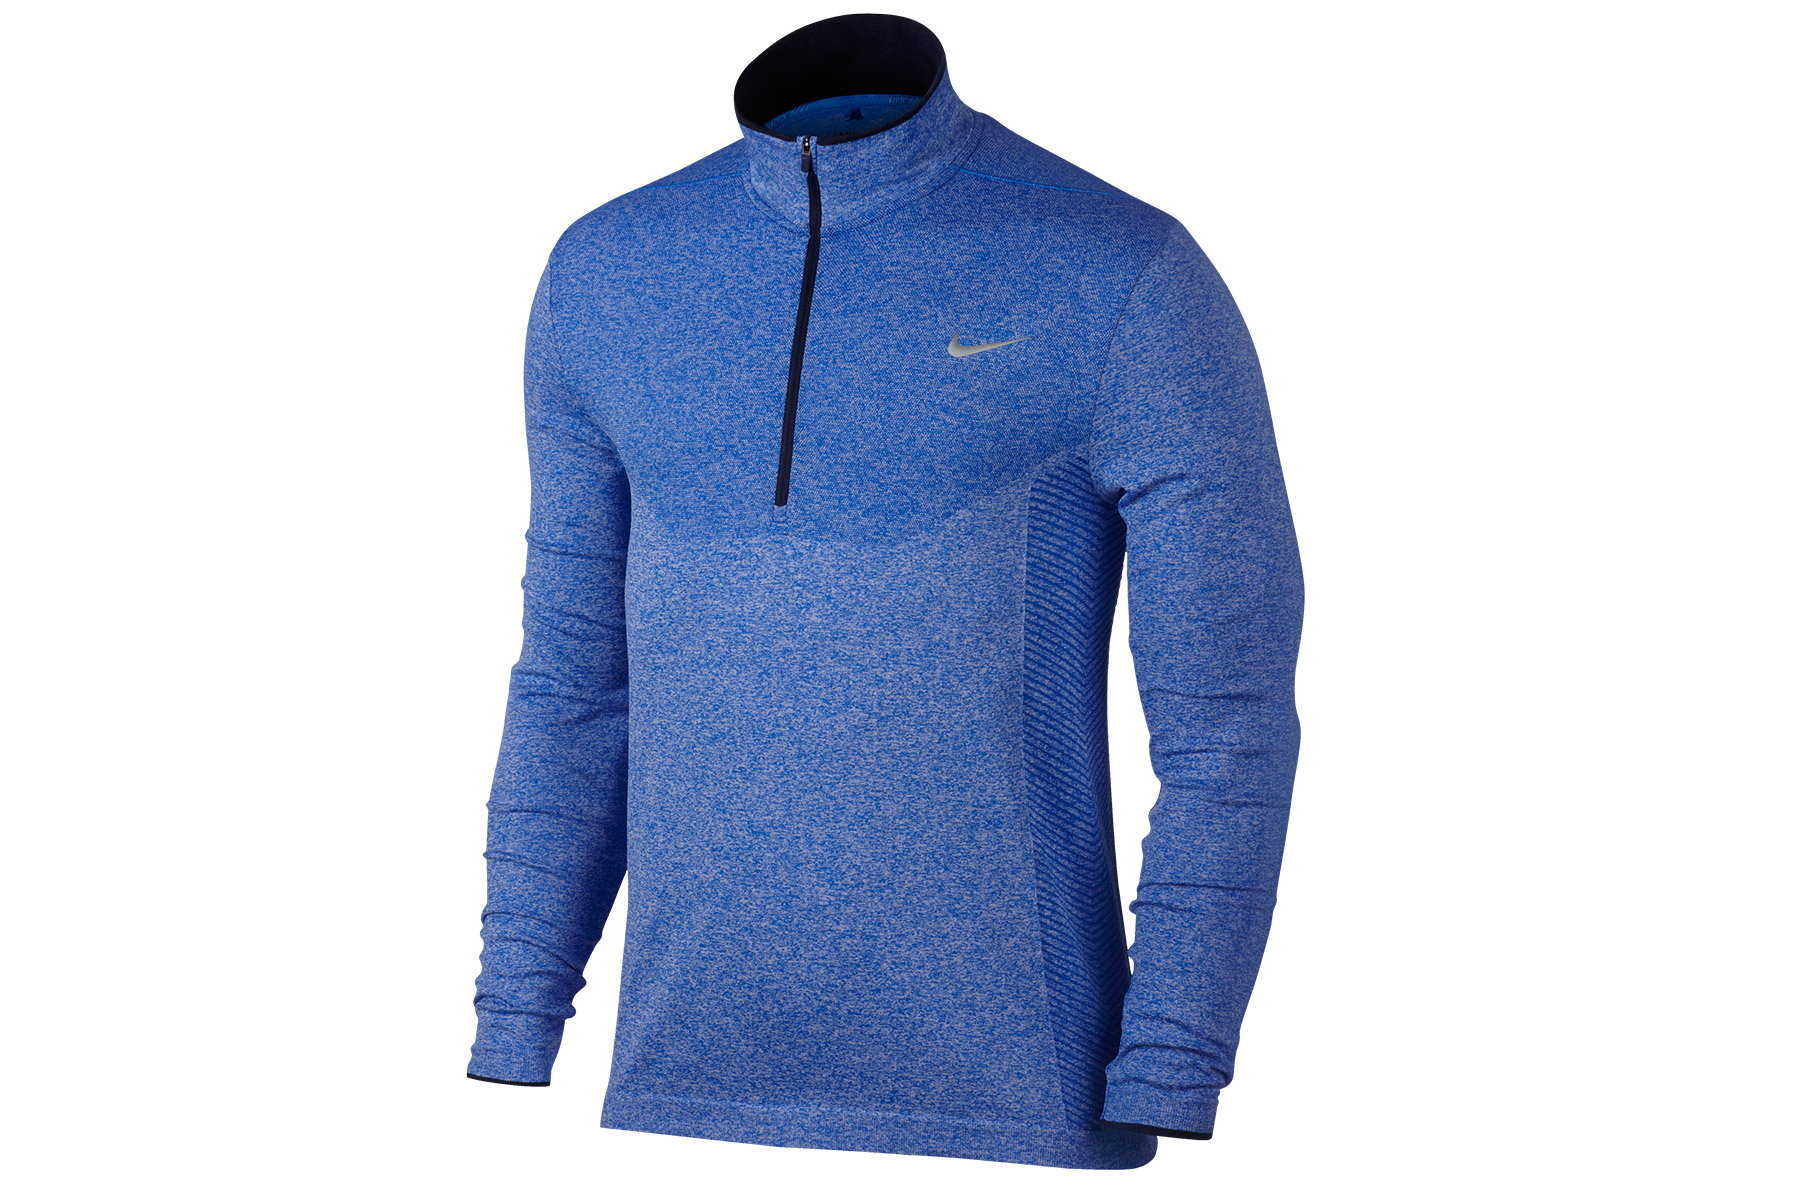 Nike golf dri fit knit sweater from american golf for Housse zip collection captur